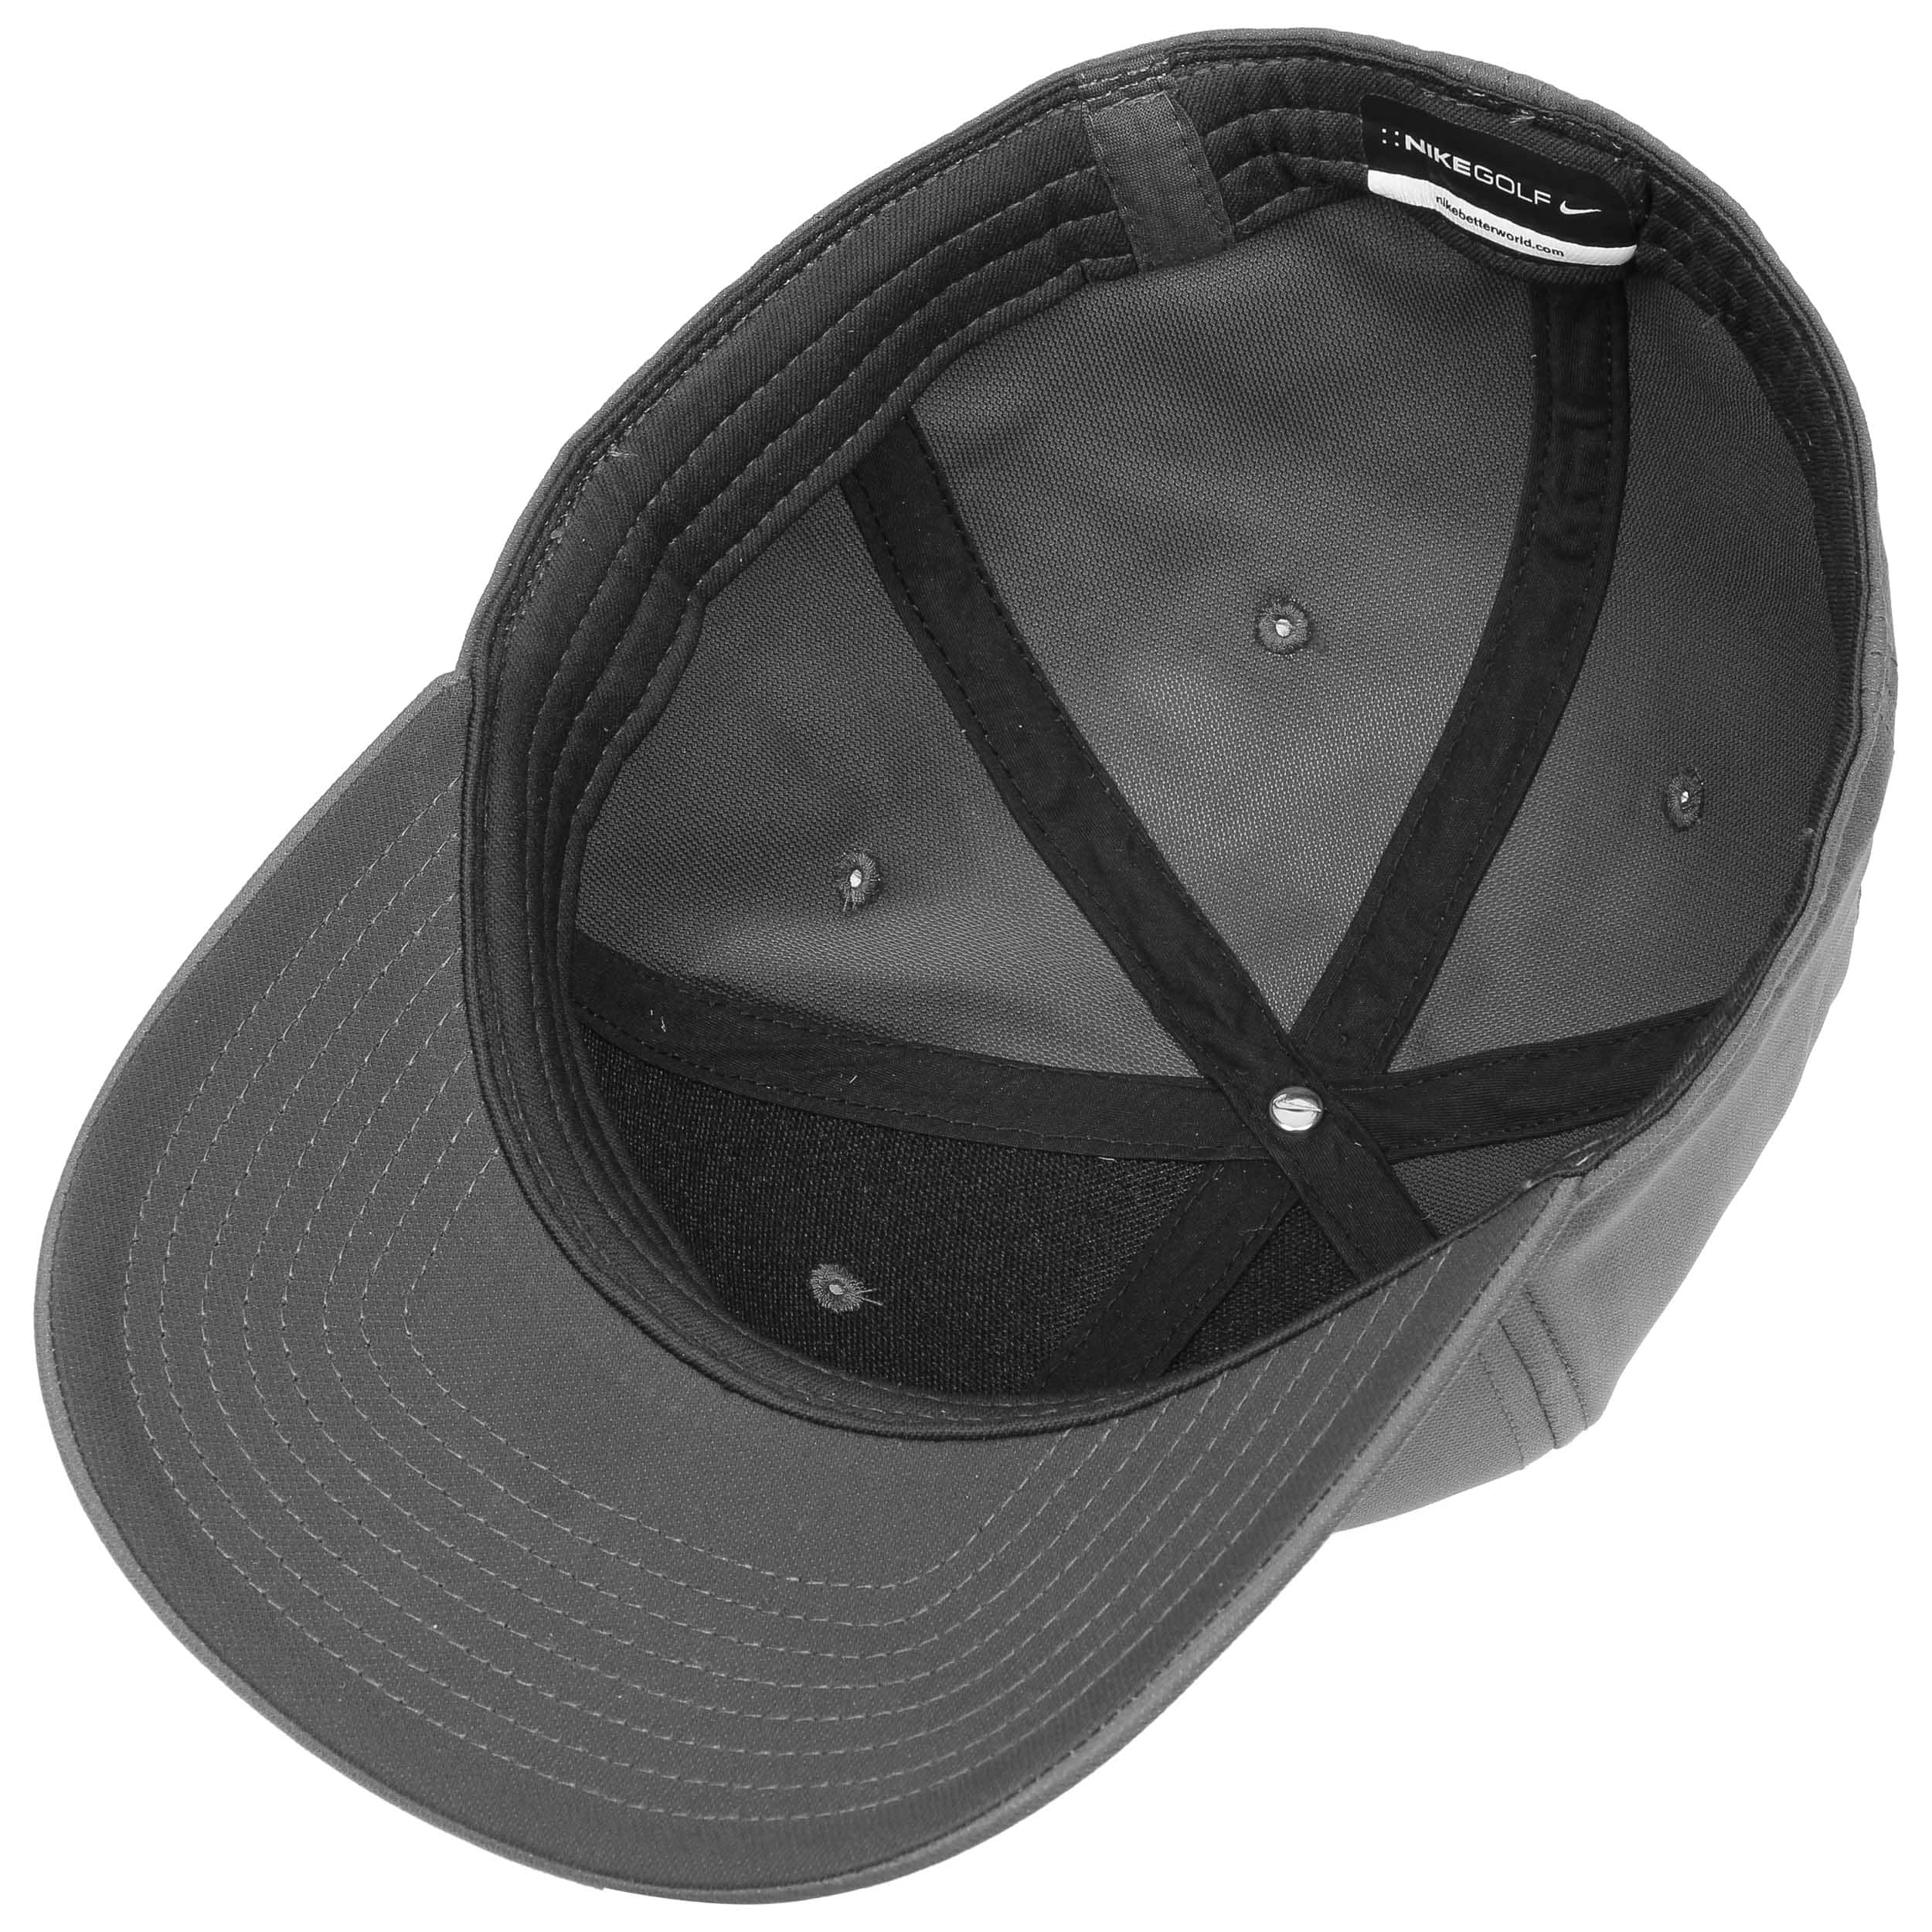 063e79a70ad ... Golf Classic 99 Performance Cap by Nike - dark grey 2 ...